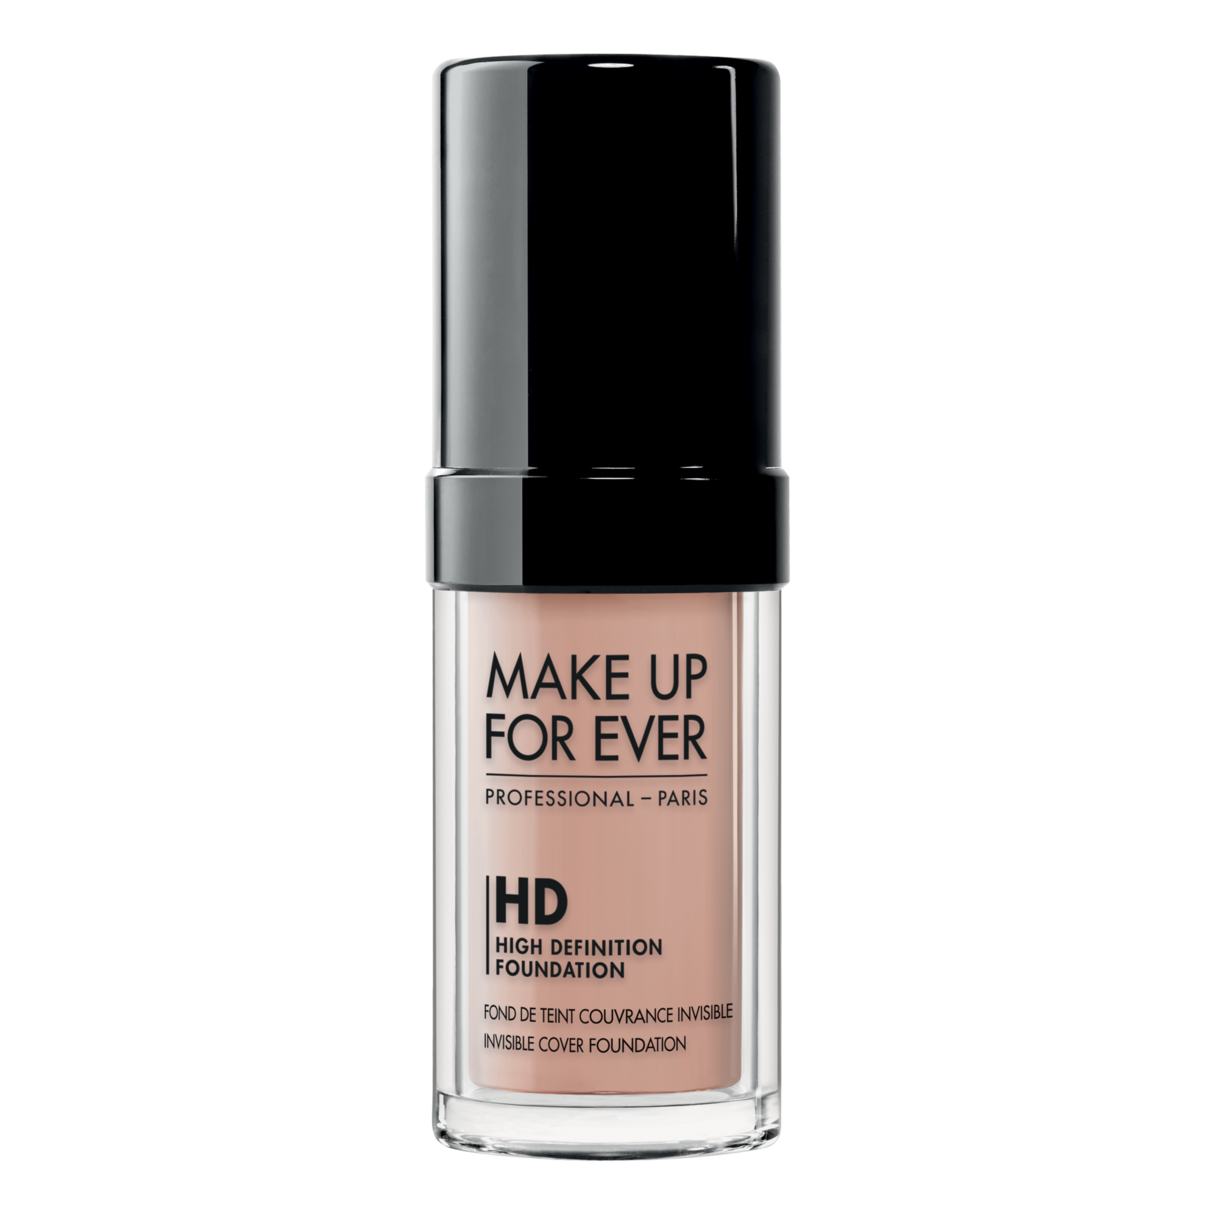 hd foundation foundation make up for ever